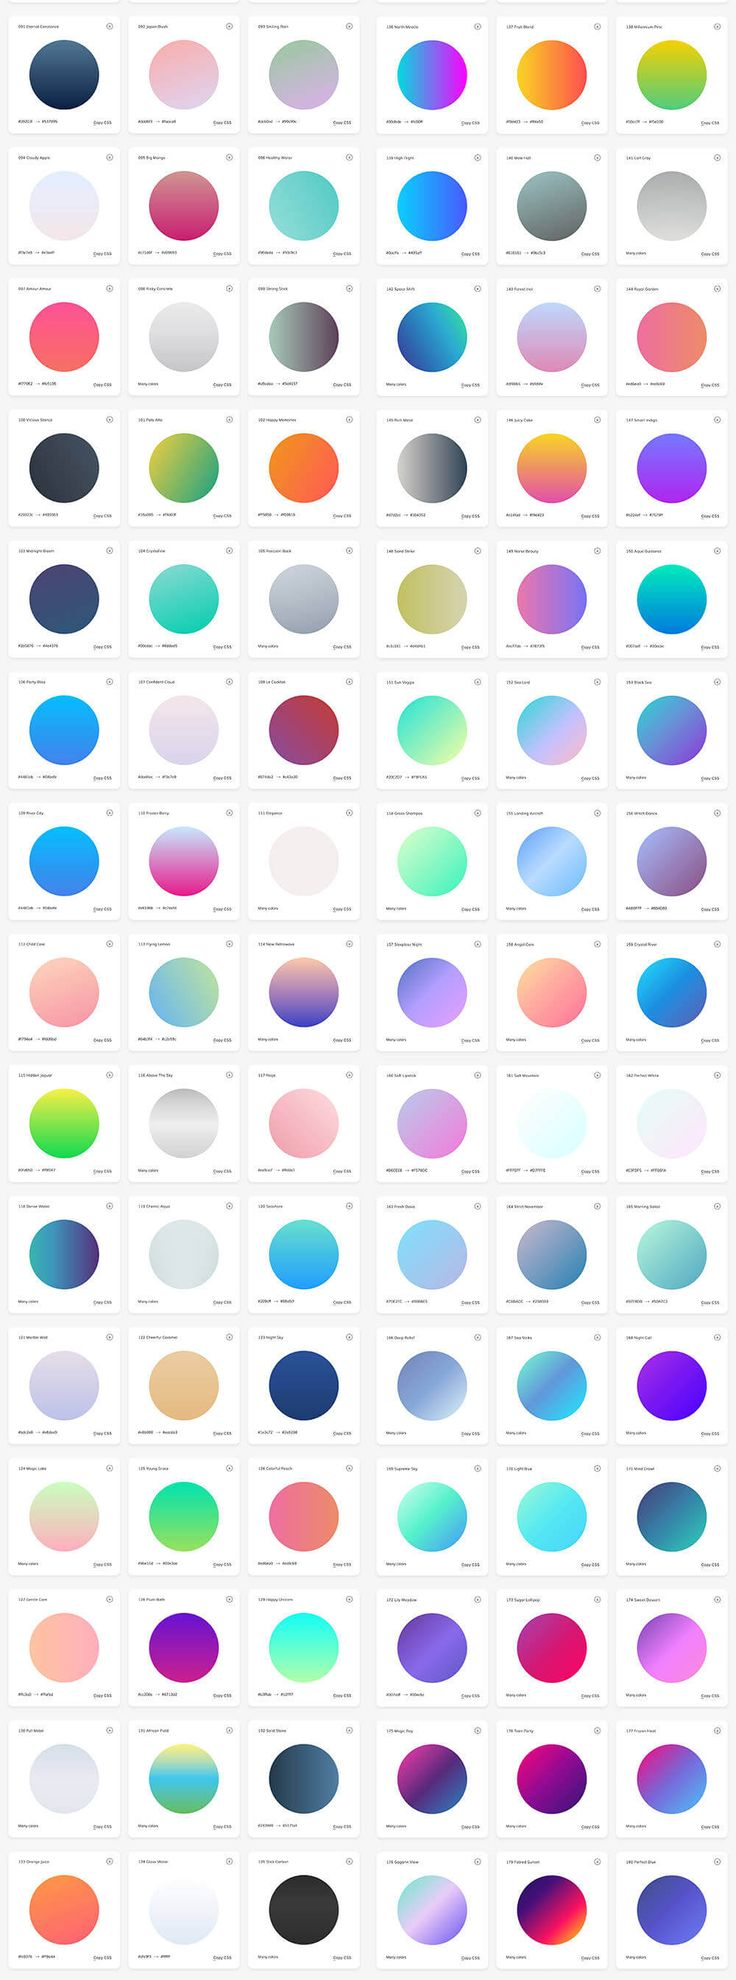 webgradients2